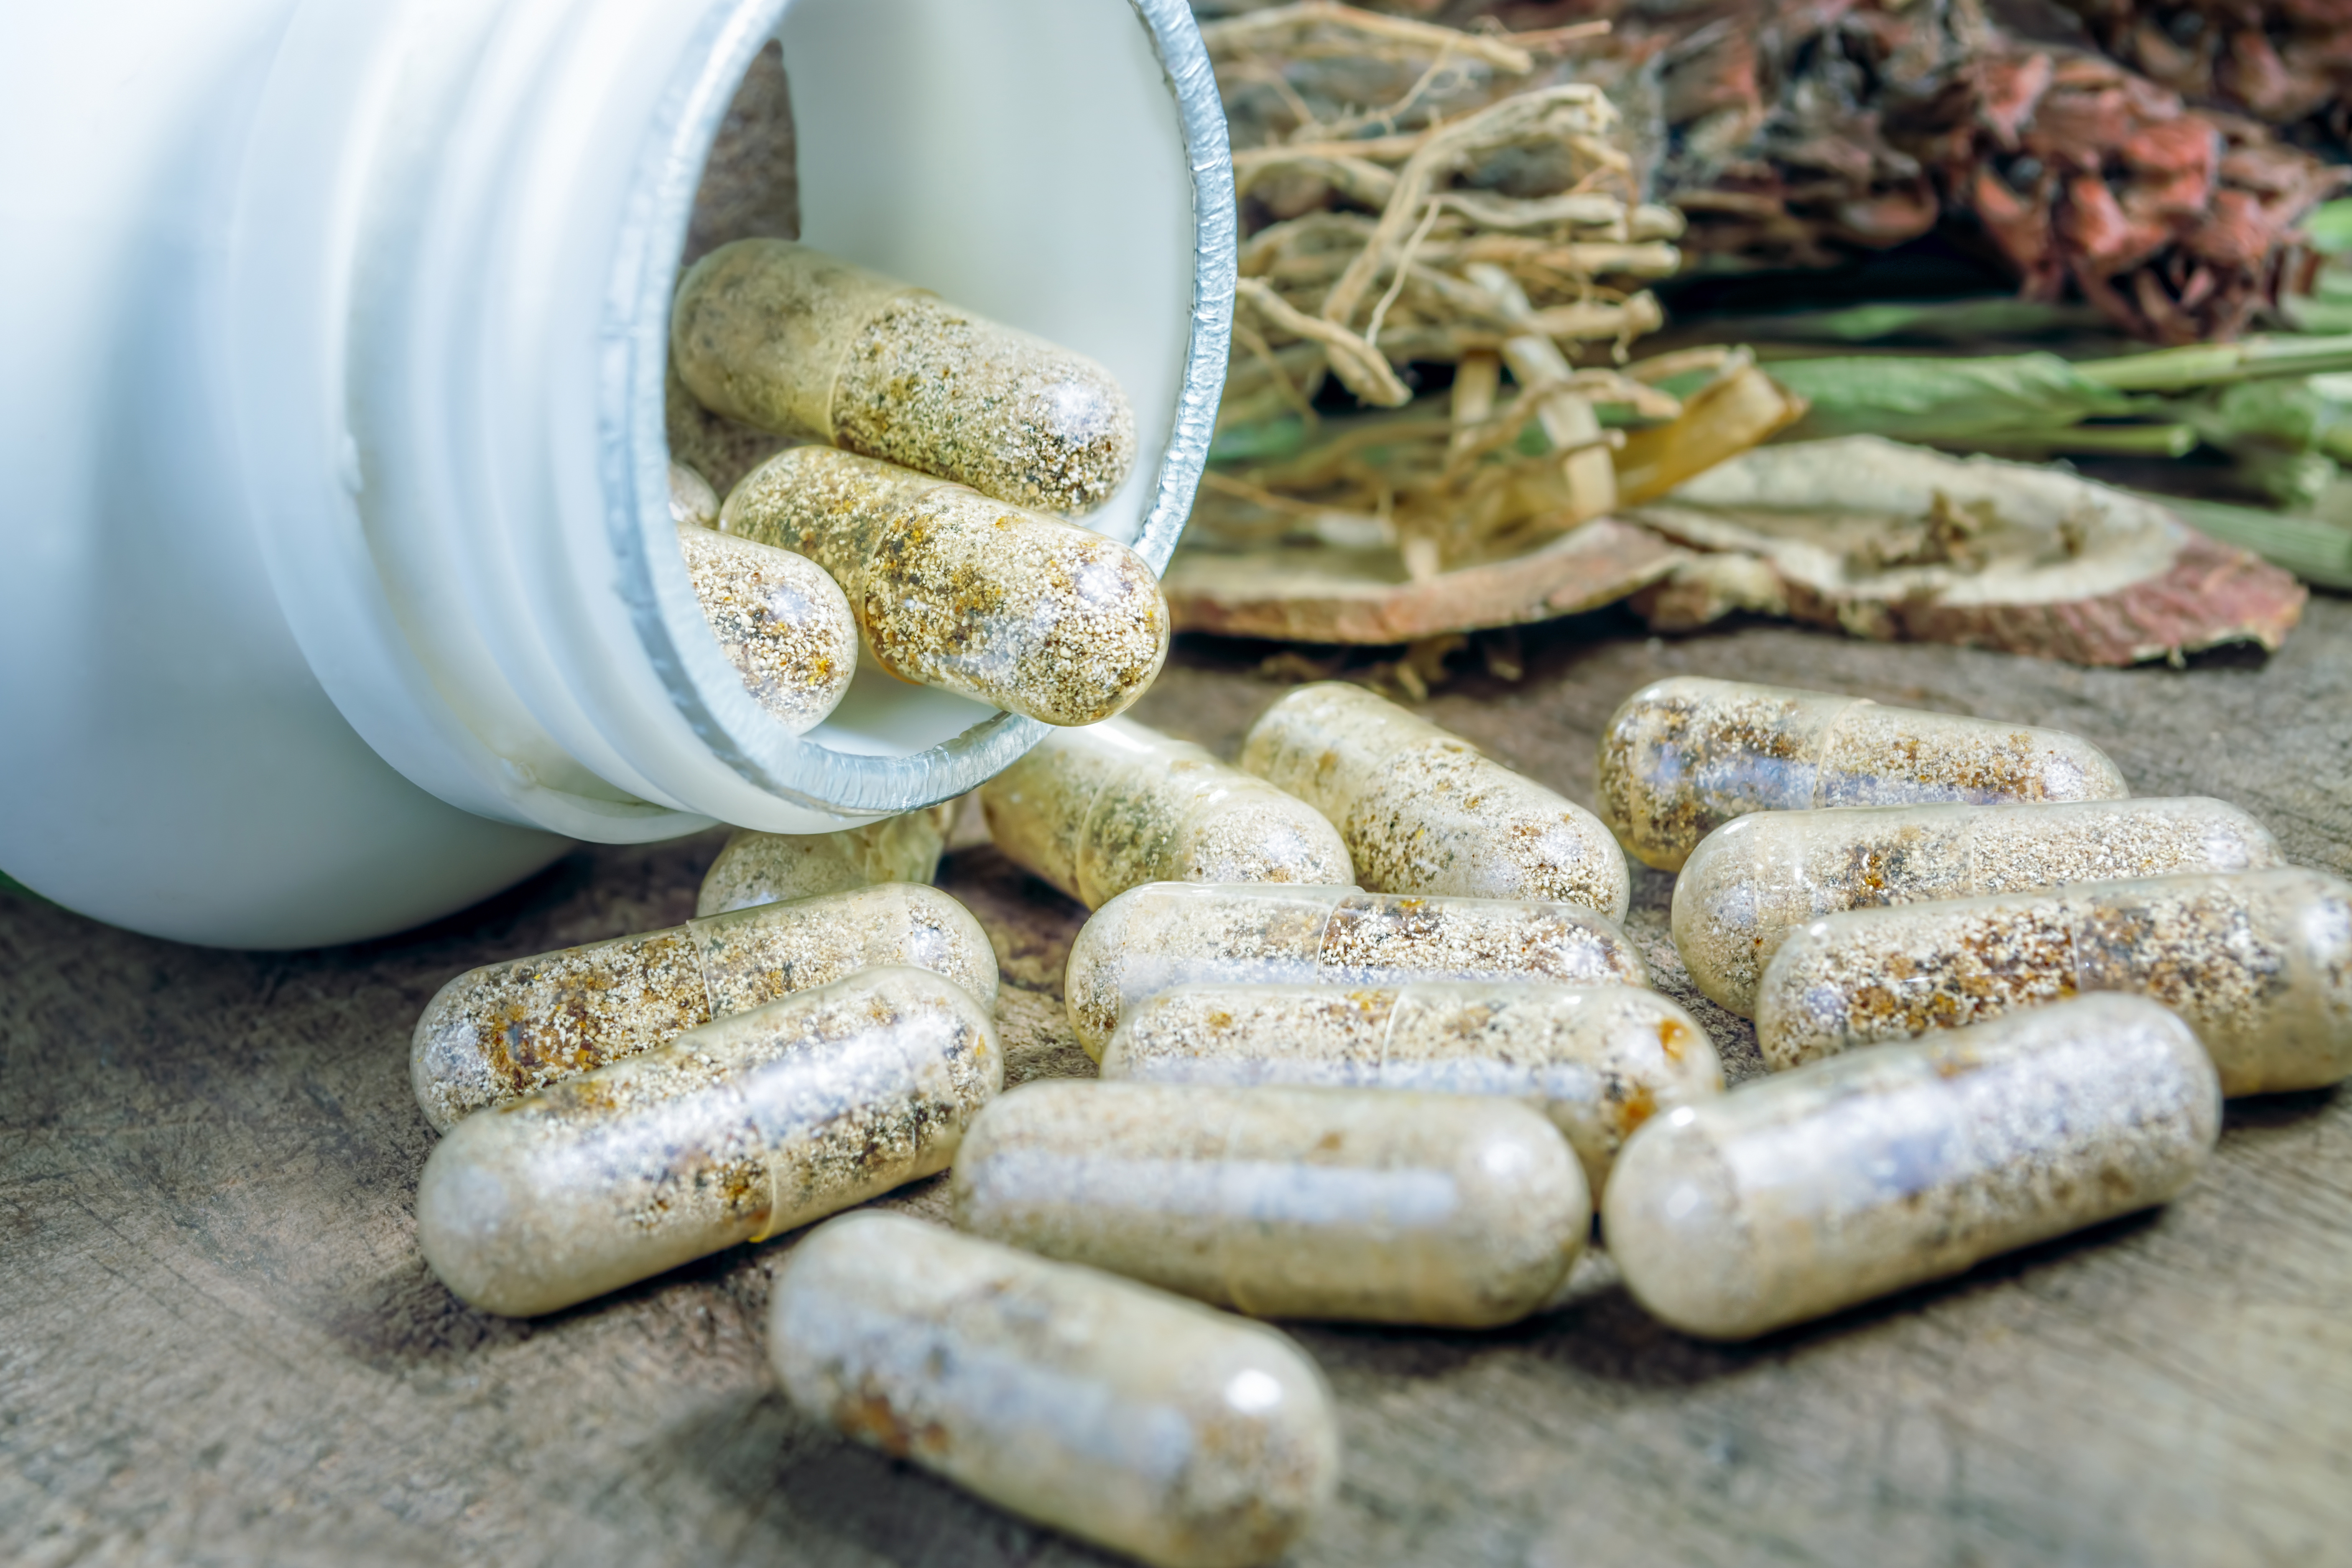 Snow leopard, dog, heavy metals: Two in three natural supplements contain something they shouldn't